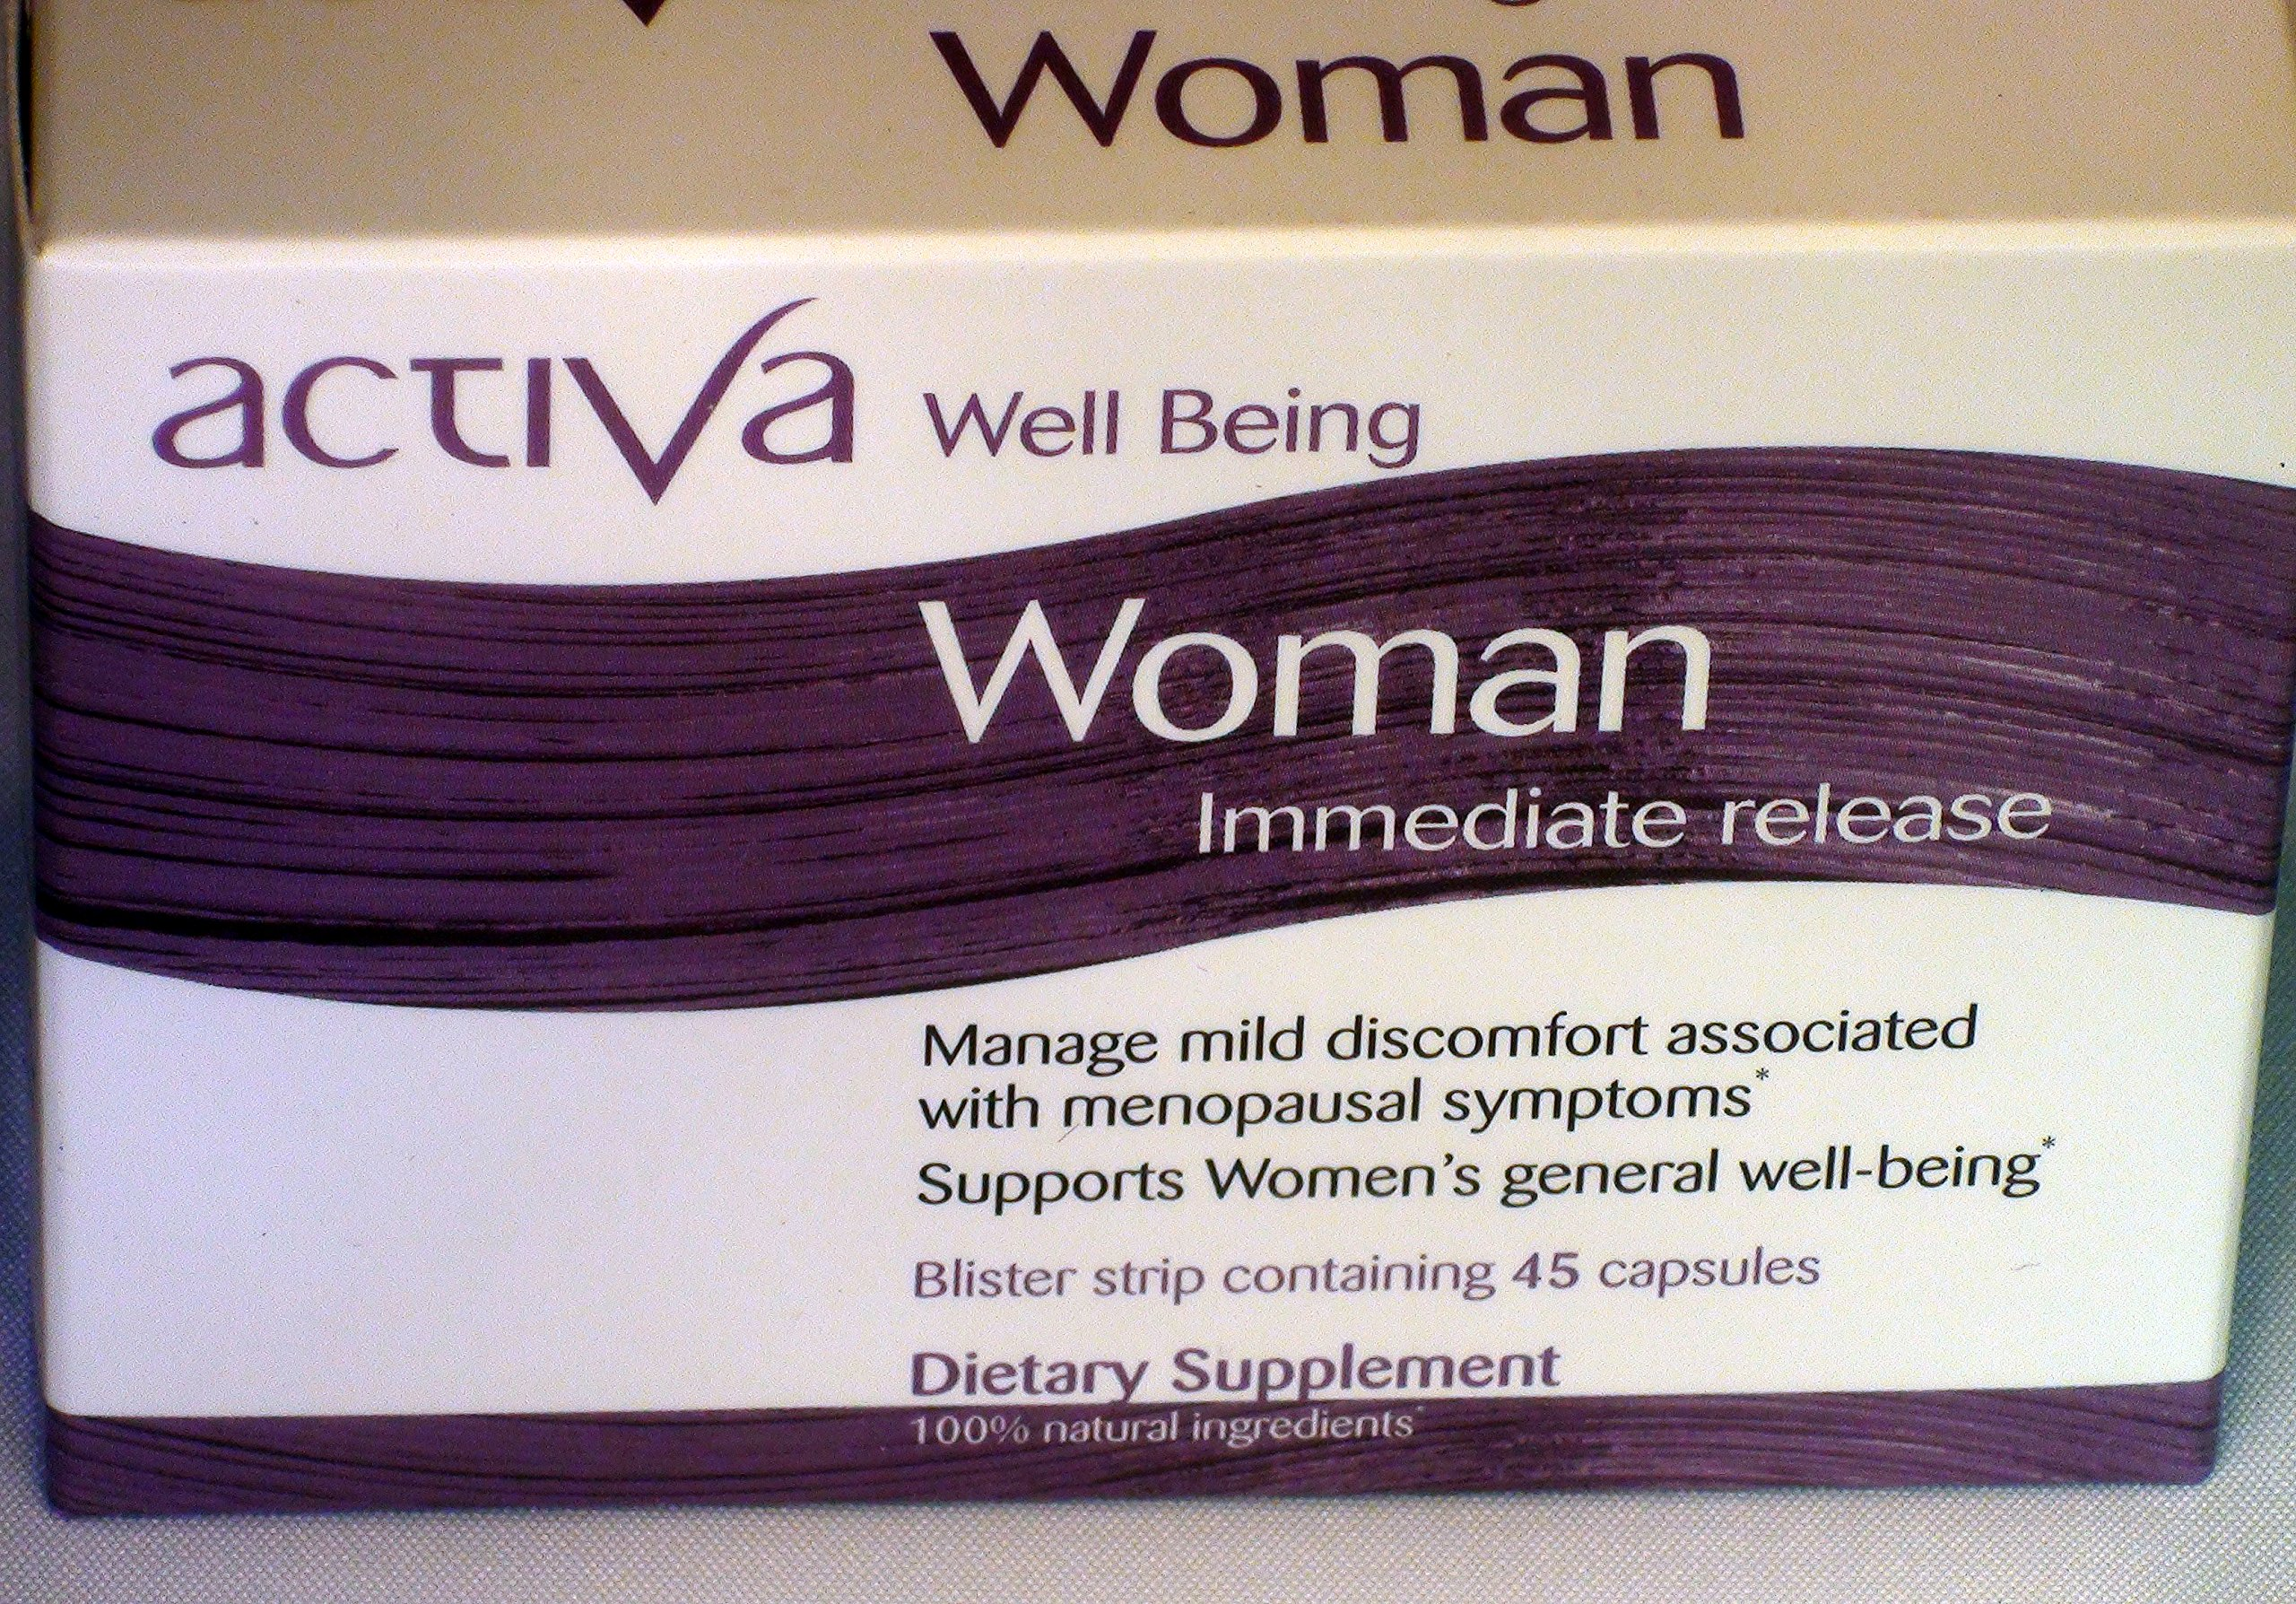 Activa Well Being Woman - Immediate Release by Laboratoires Activa